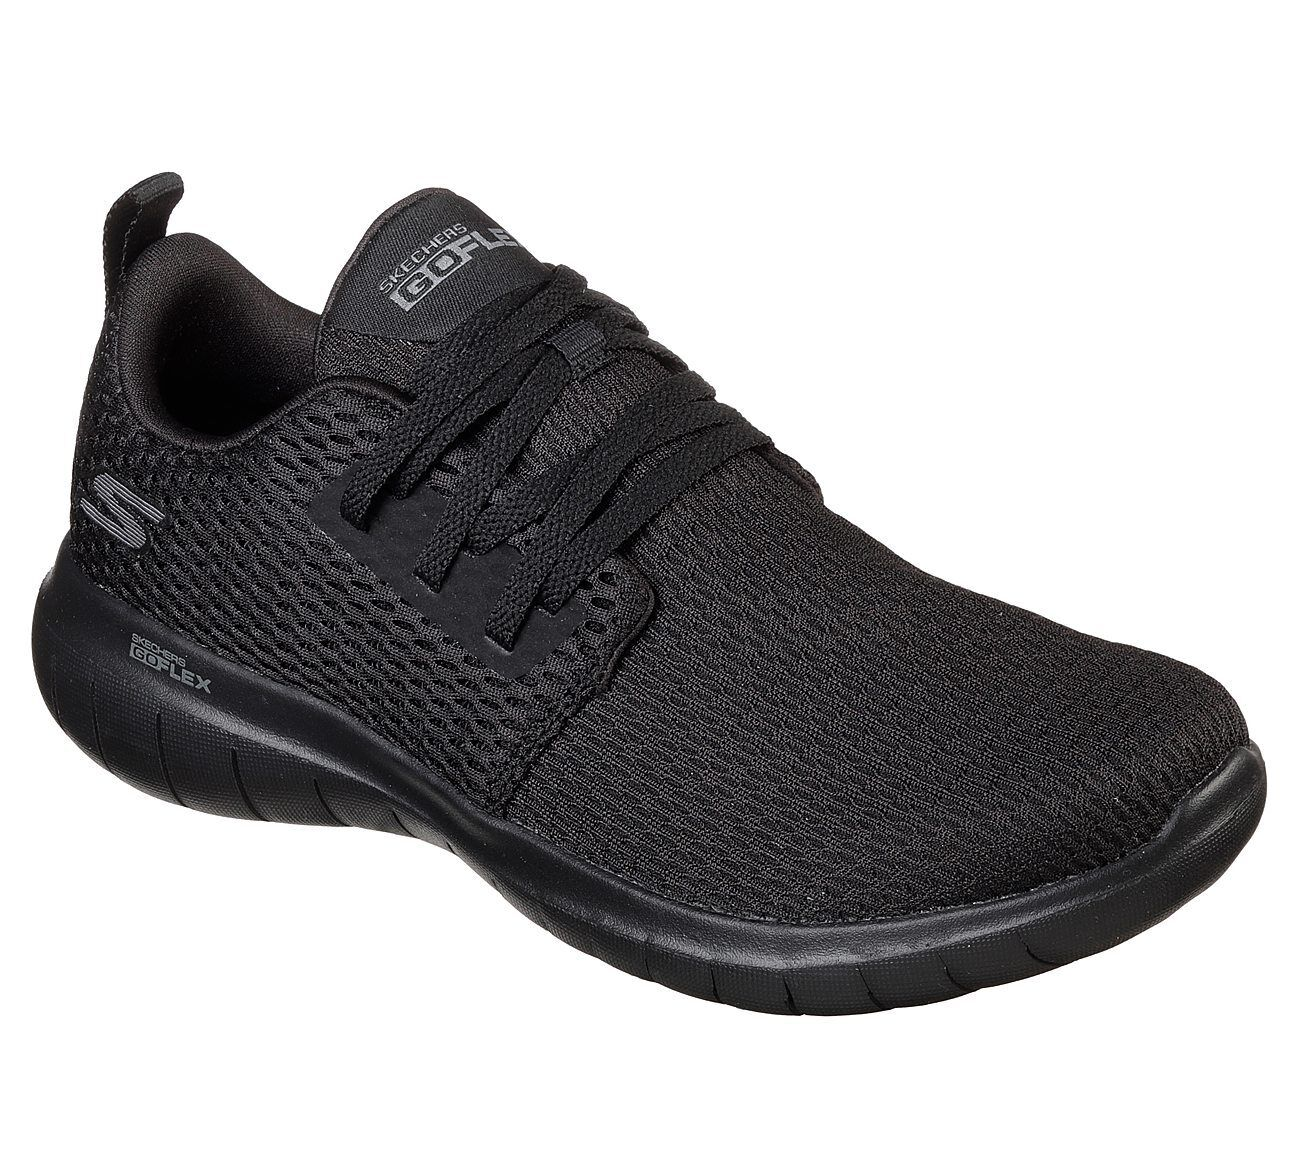 NEW WOMEN SKECHERS GO FLEX GOGA VERY MAX LACE UP BLACK VERY GOGA LIGHT SNEAKERS 15701 73b578